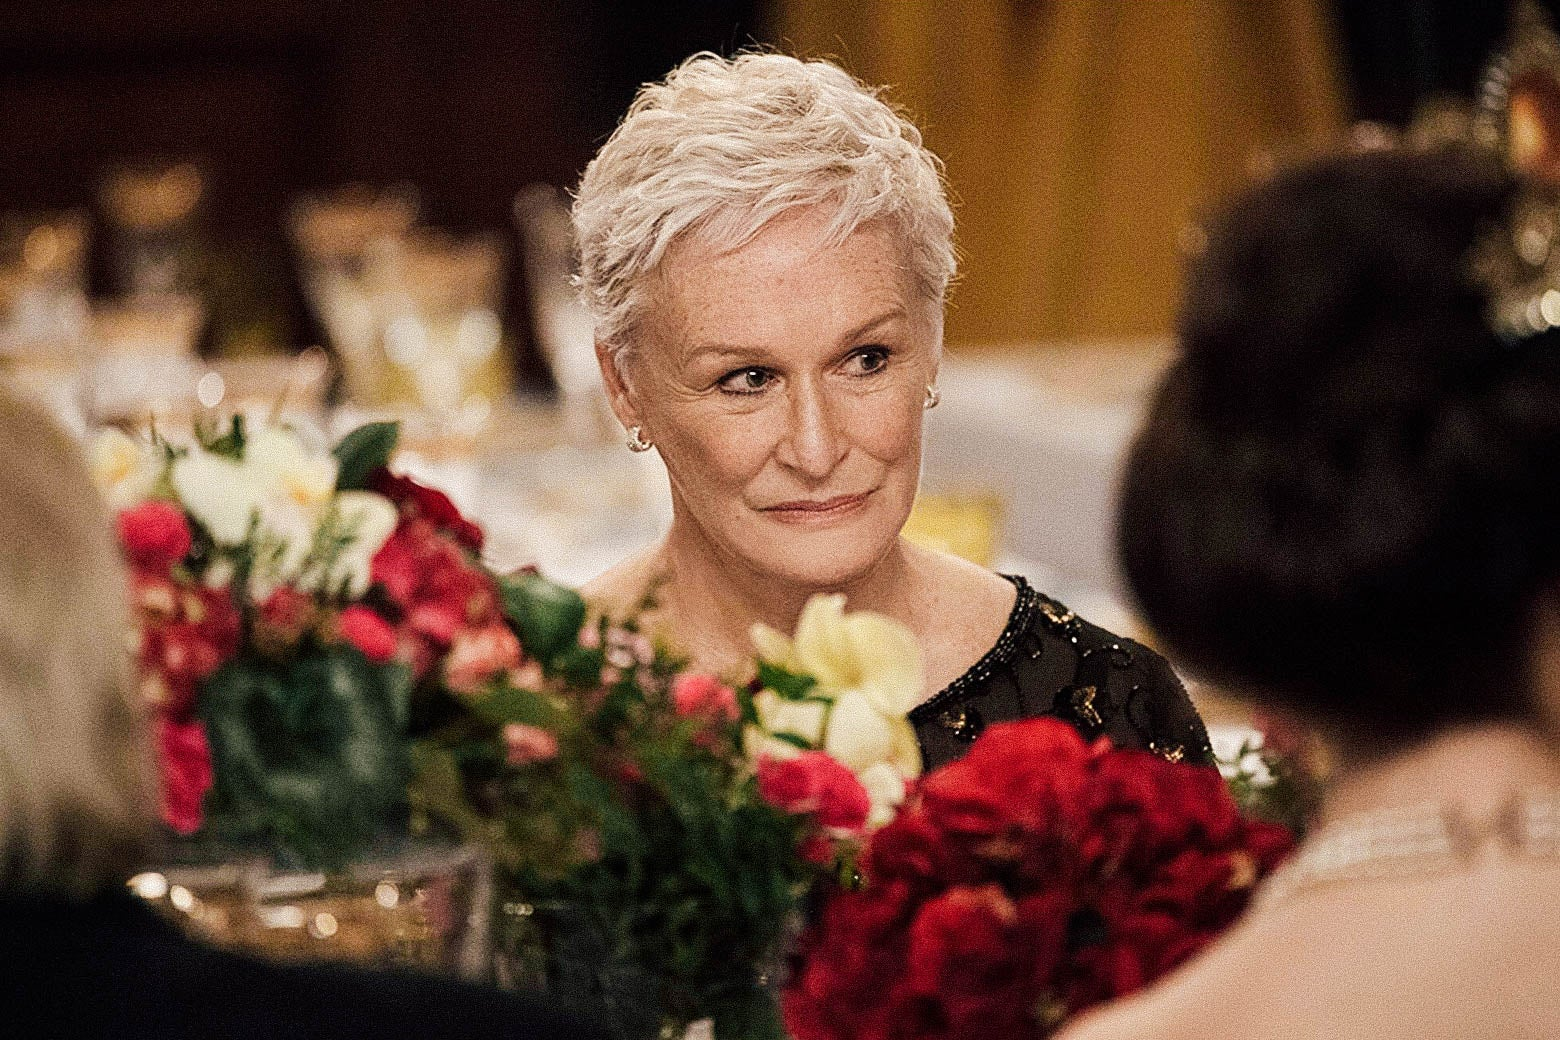 Glenn Close at a banquet table seen behind a flower centerpiece.